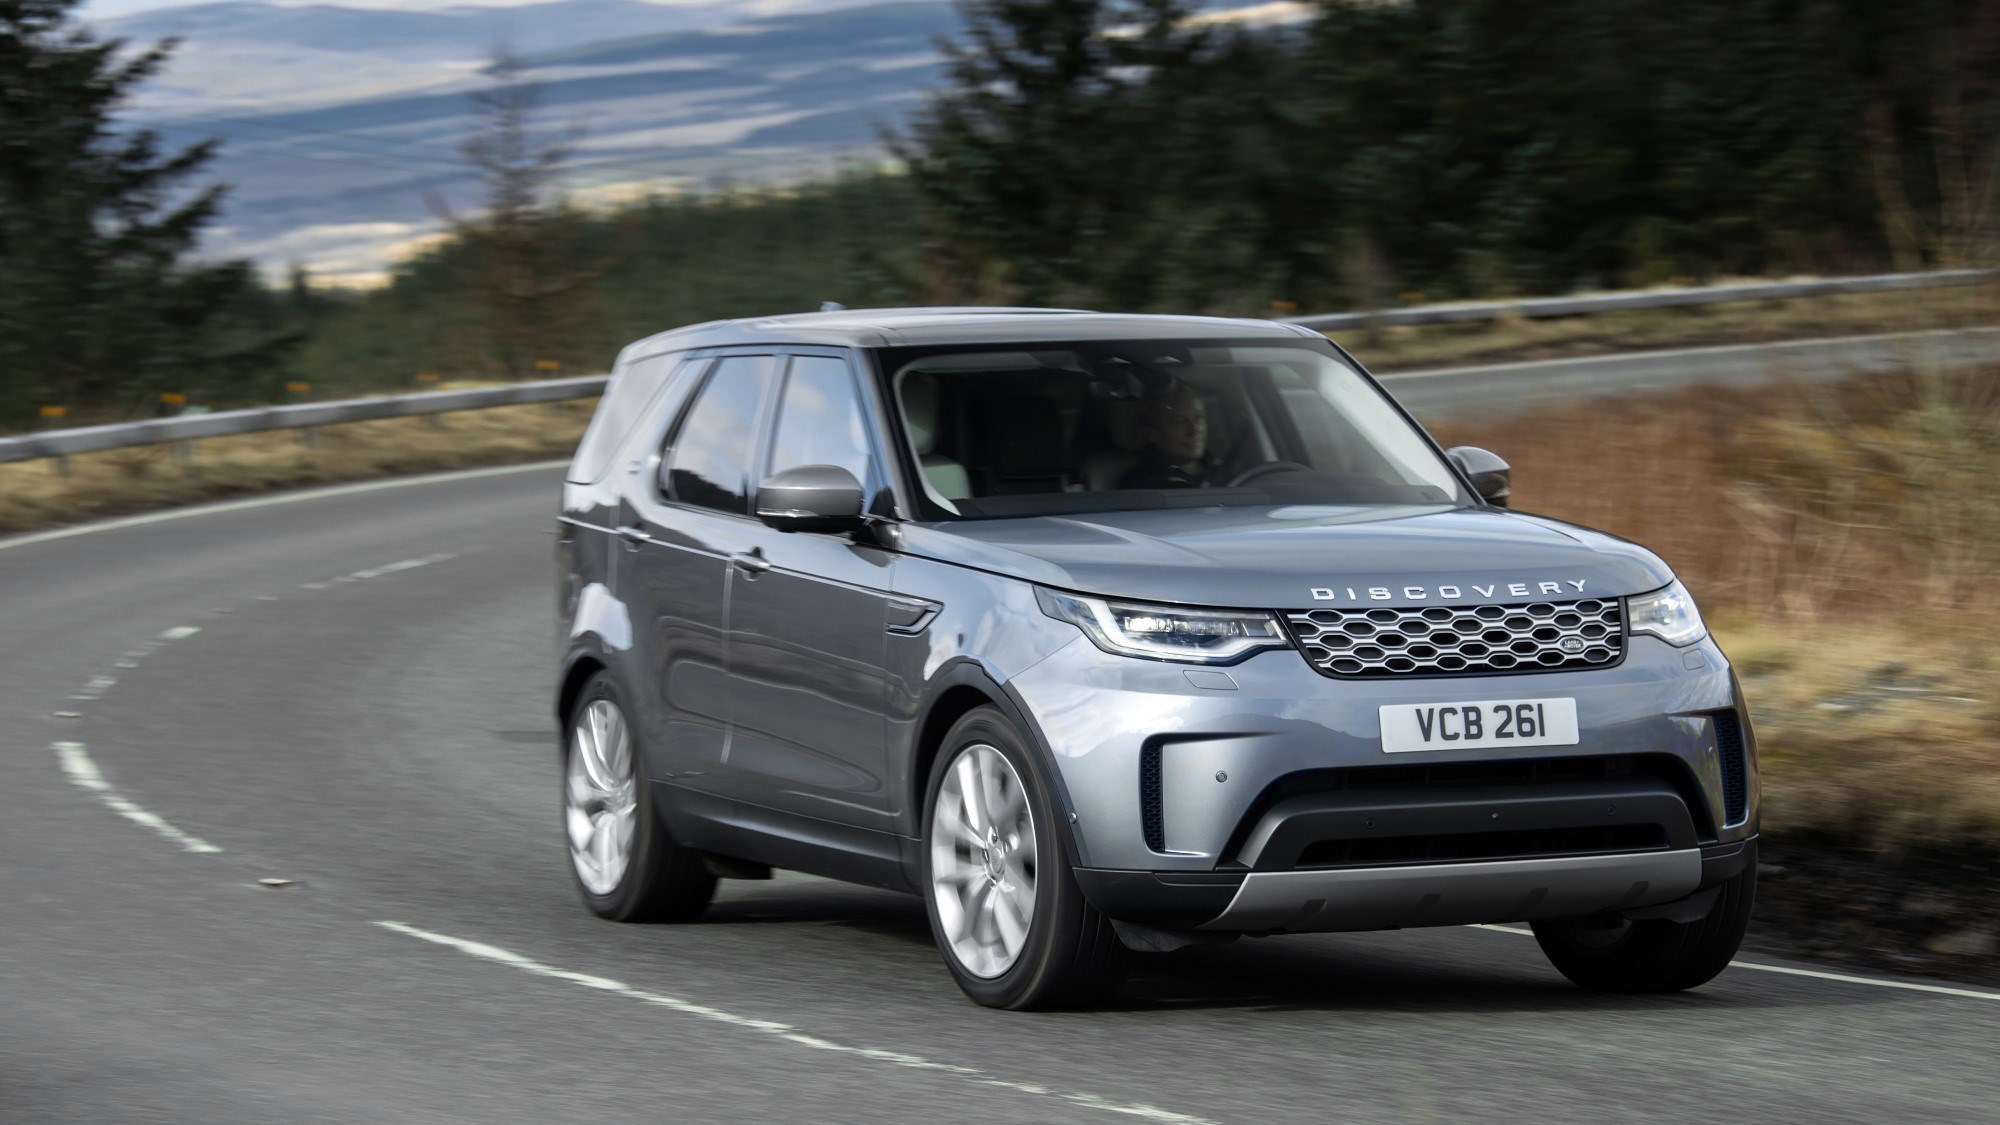 2021 Land Rover Discovery cornering